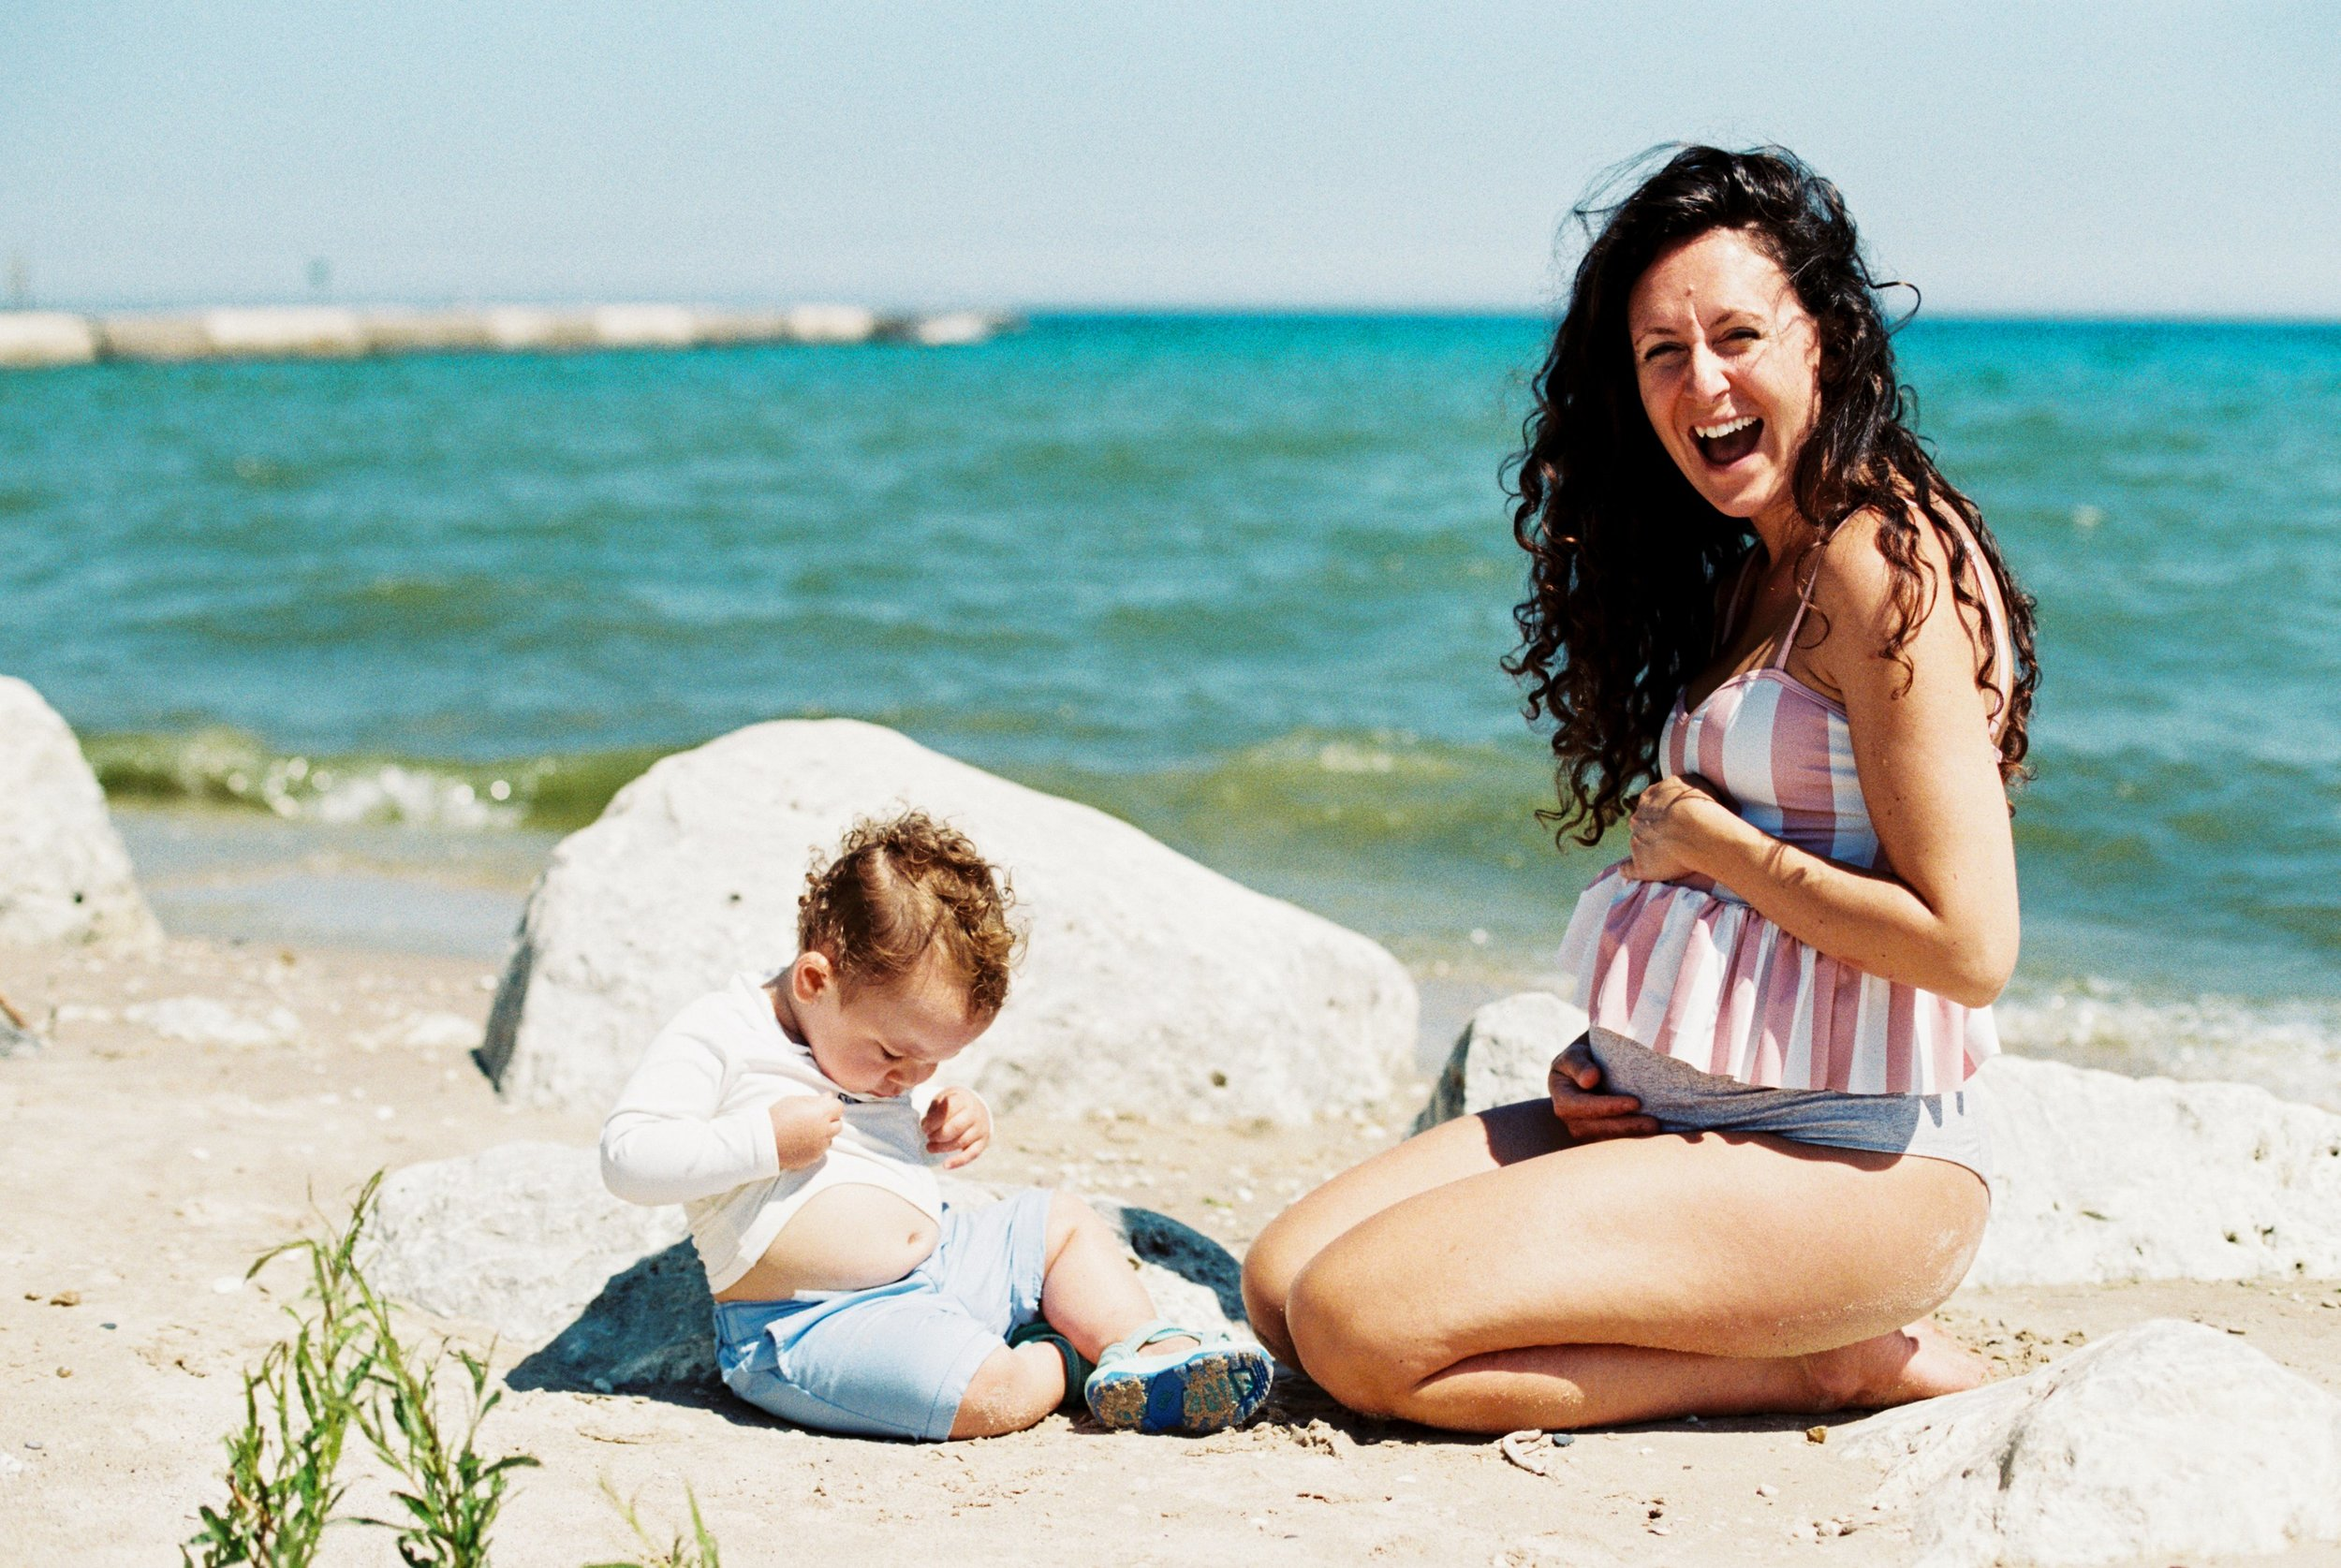 Lake Michigan Summer Beach Pregnant Mother and Baby by Seattle Lifestyle Portrait Photographer Janelle Elaine Photography on film.jpg